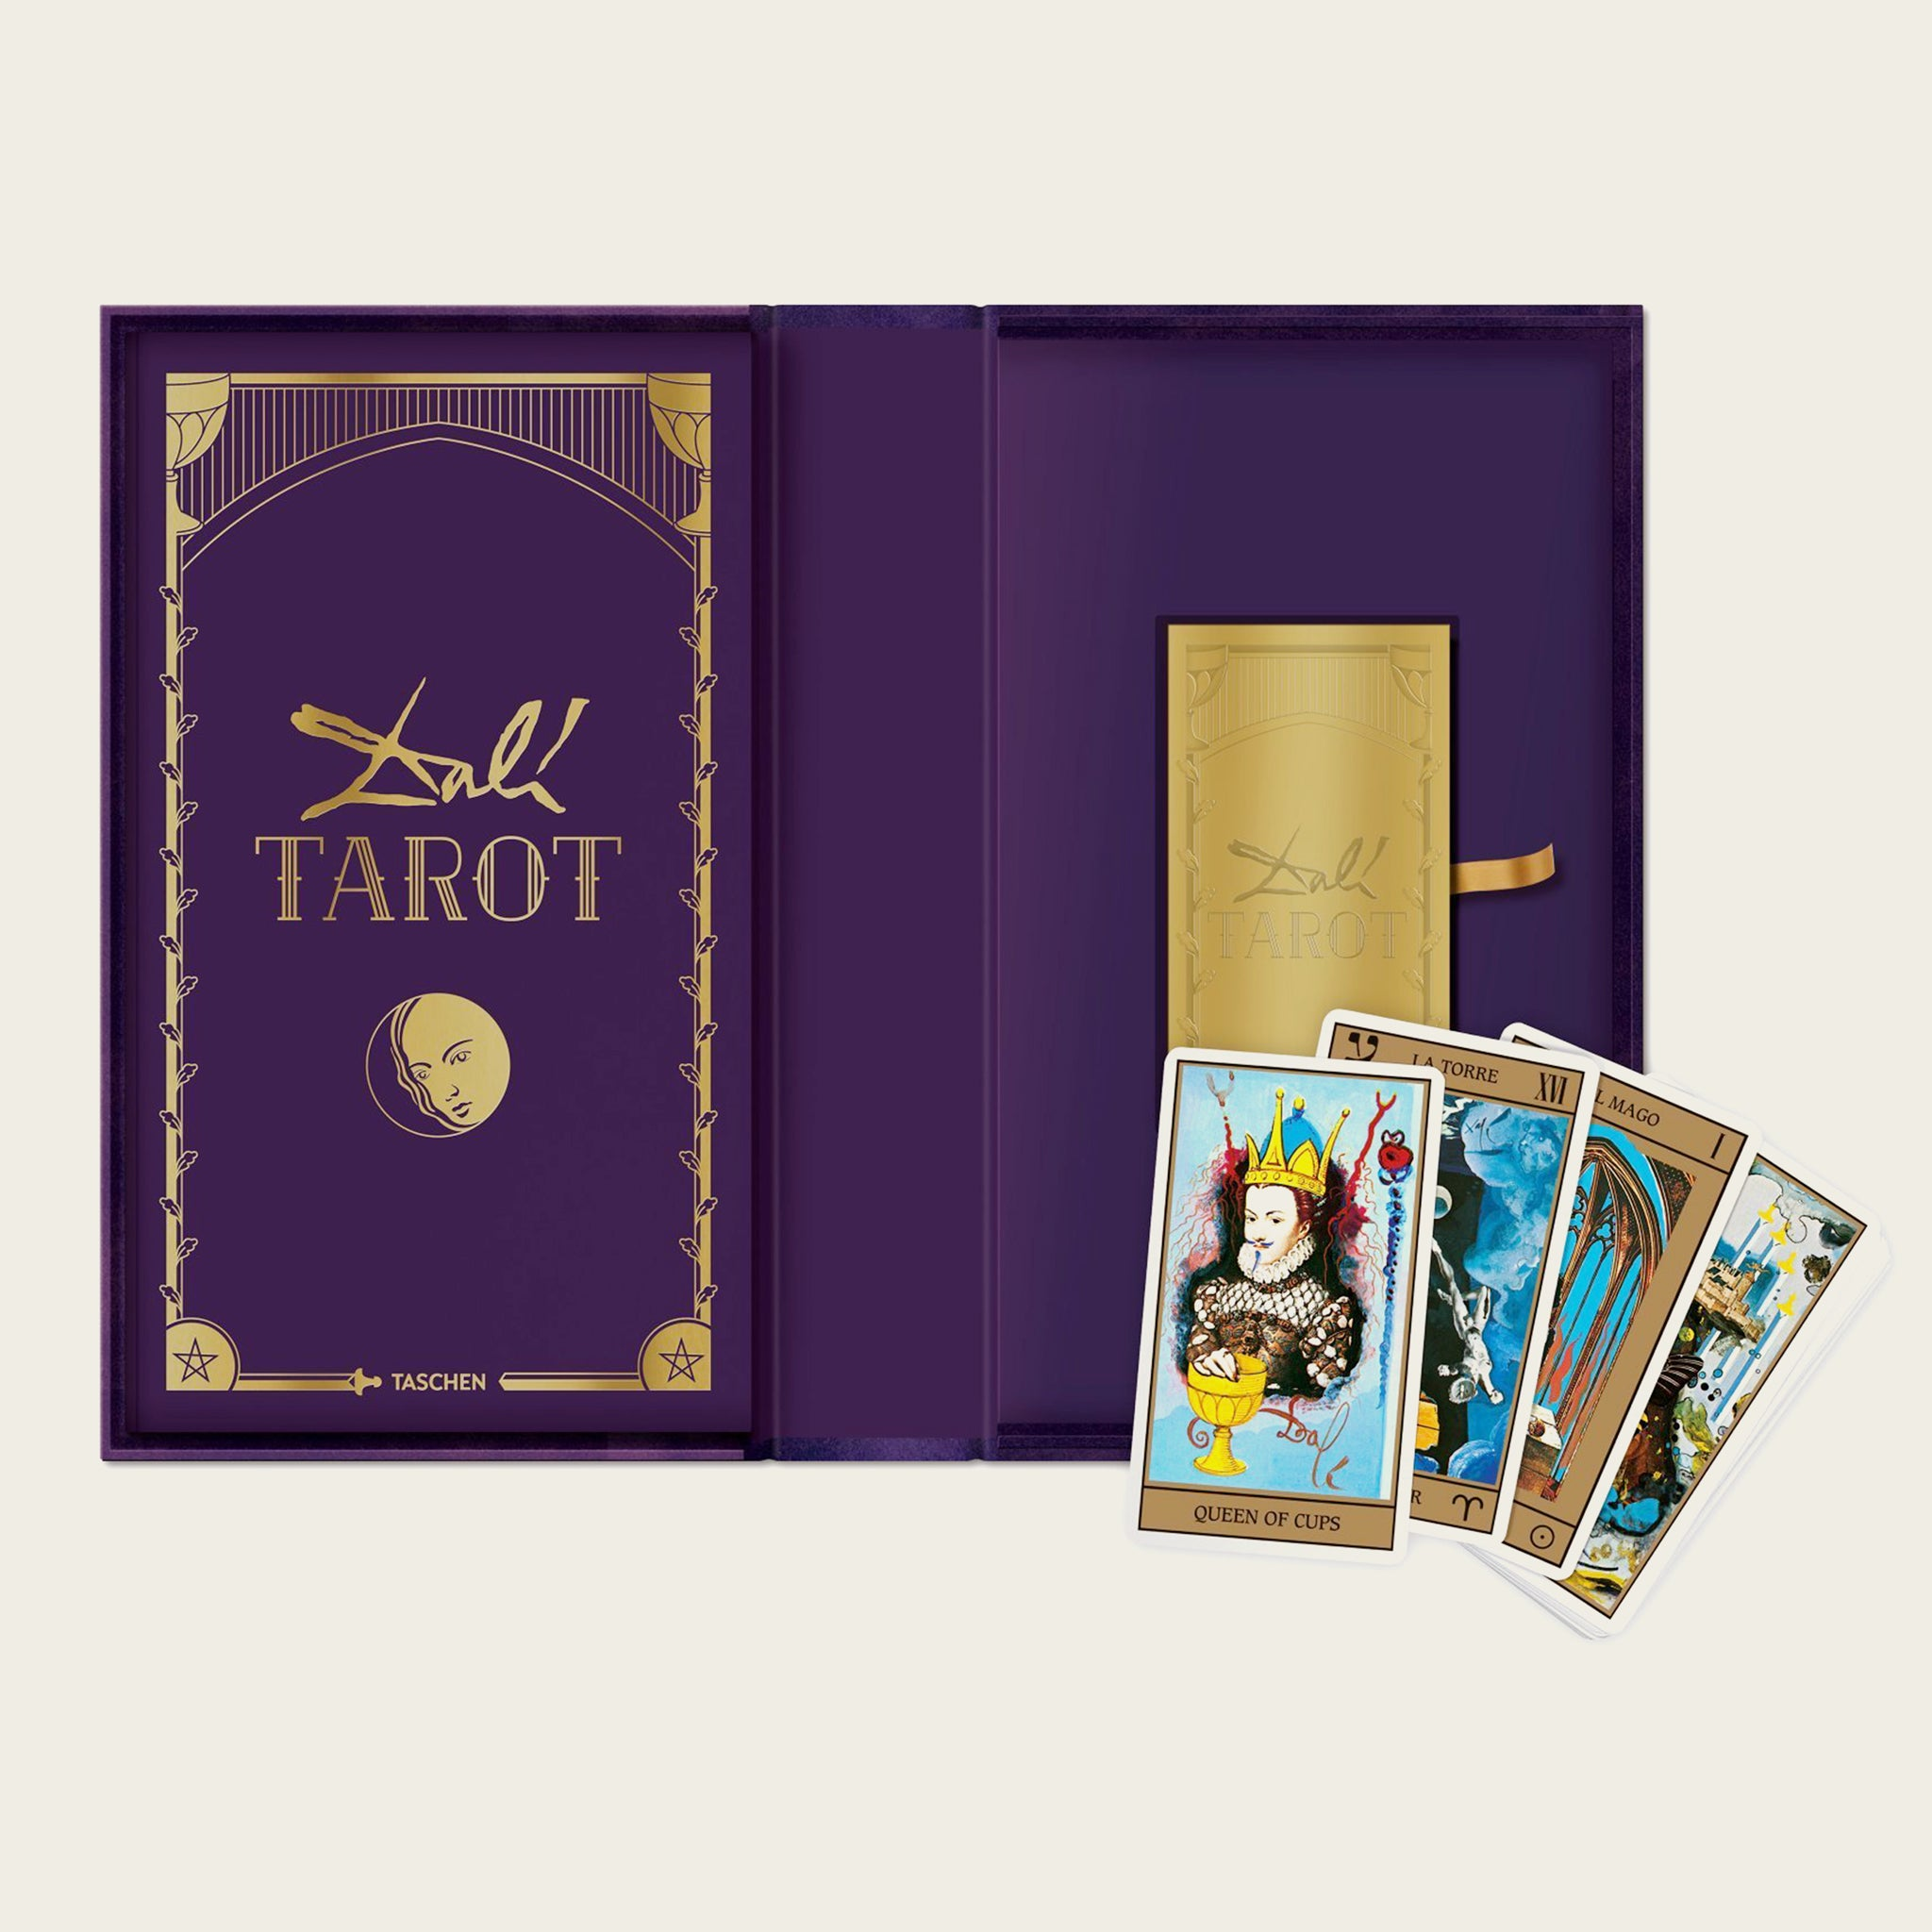 Dali, Tarot Gift Set - Blackbird General Store